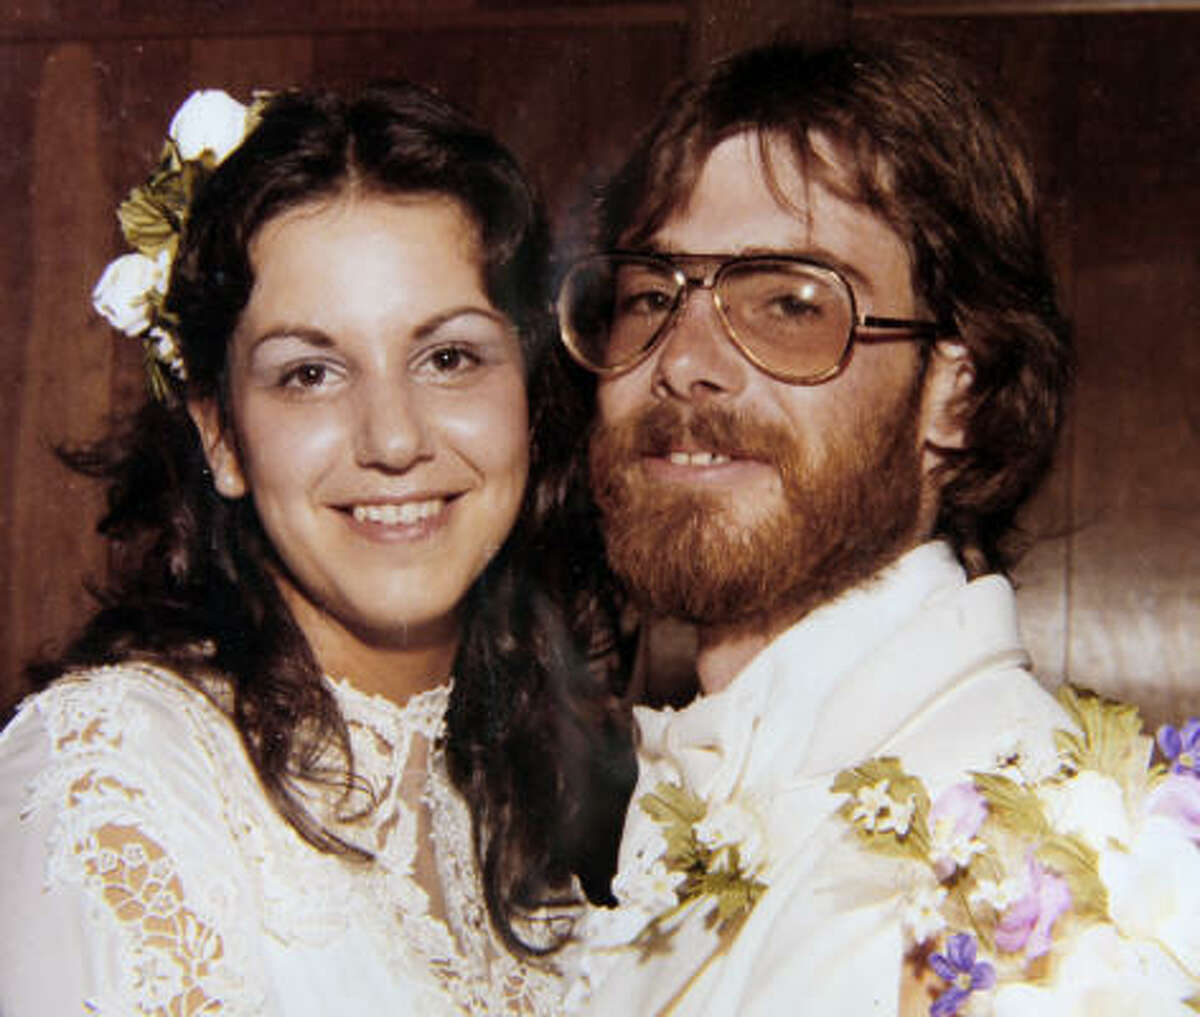 Colleen Schultheis, shown in a 1979 wedding photo with Bob Emery, said she wasn't surprised to learn her ex-husband risked his life to save animals.